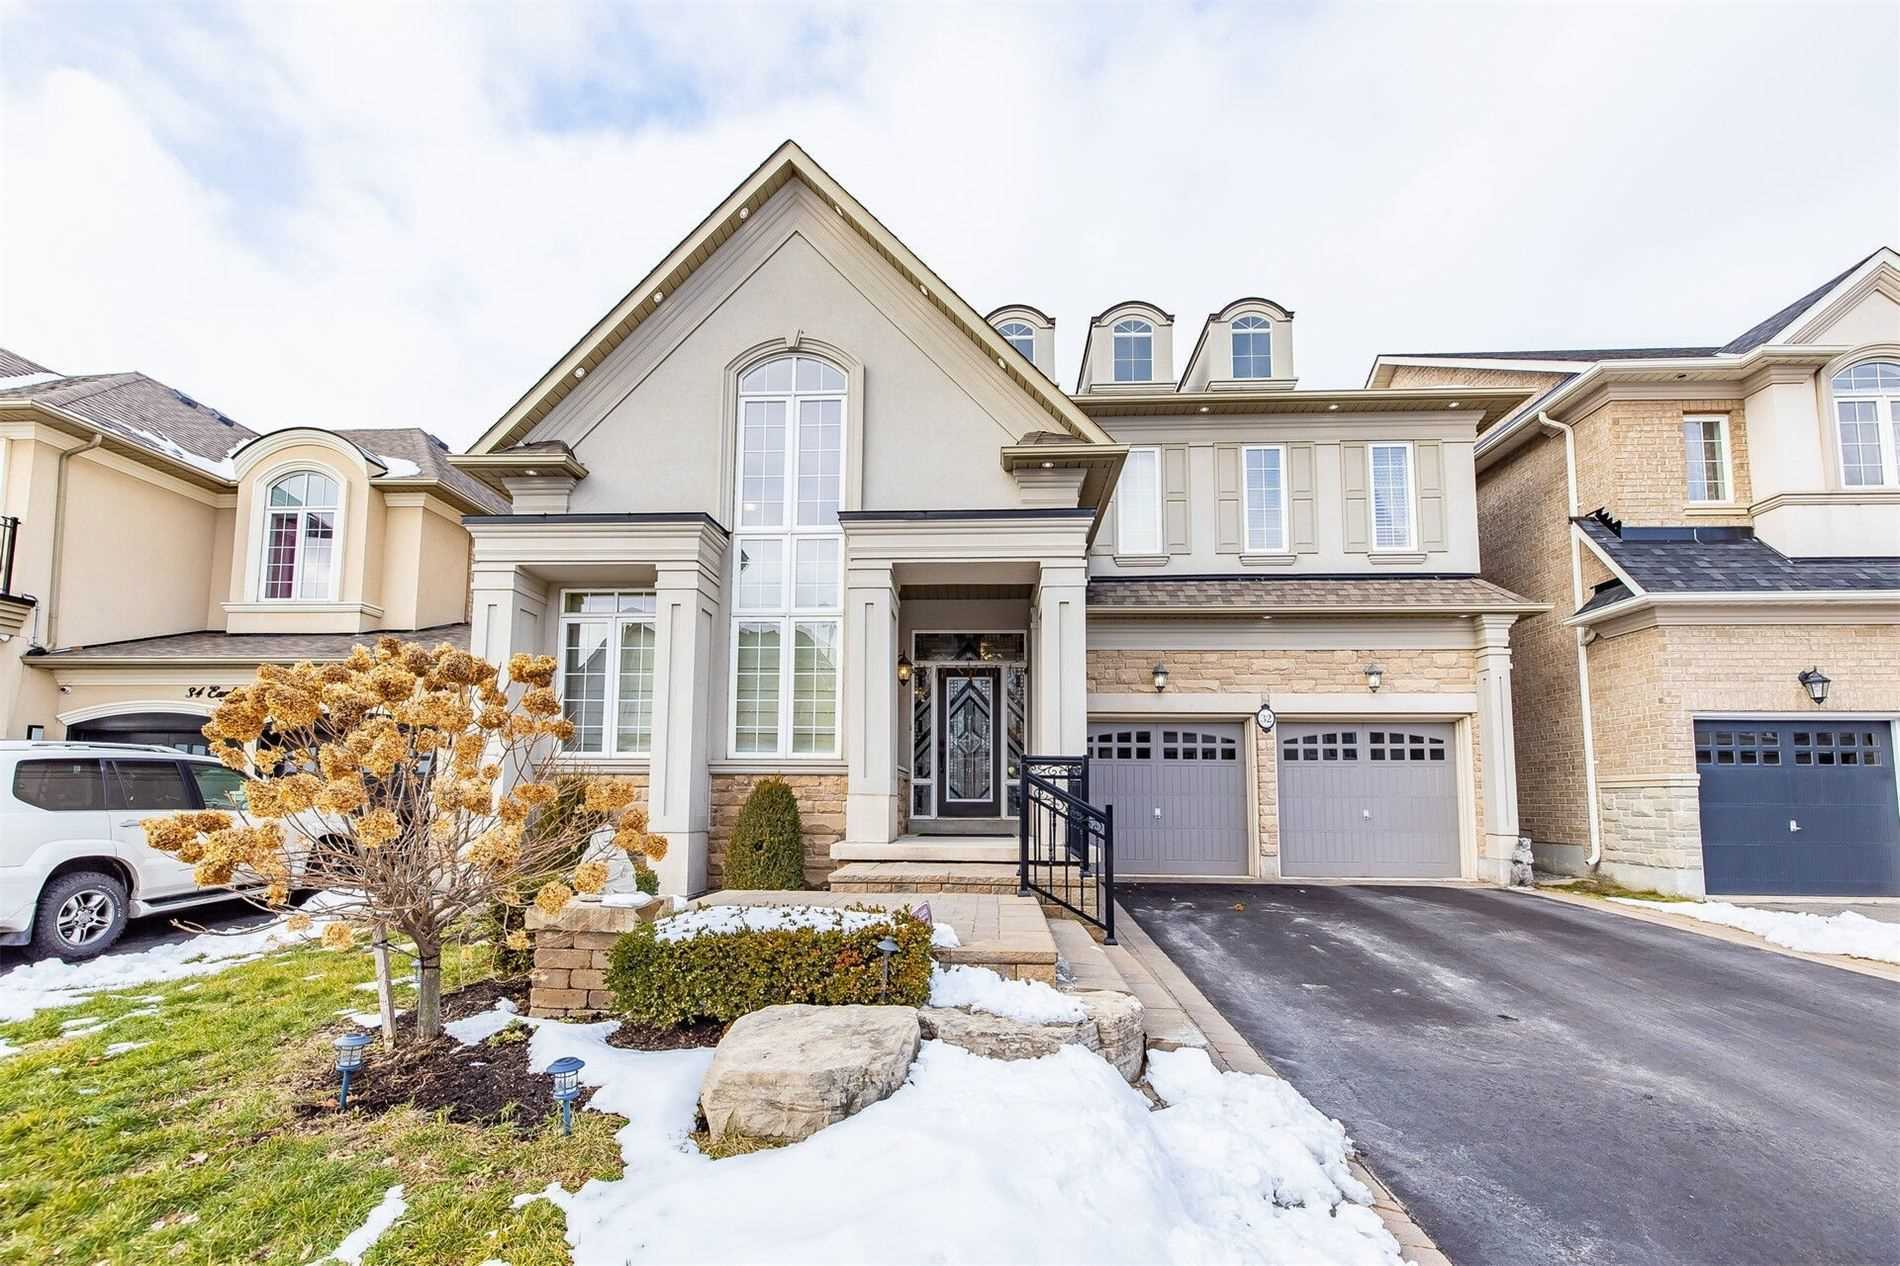 32 Eaglesprings Cres - W5080359- $1,399,000